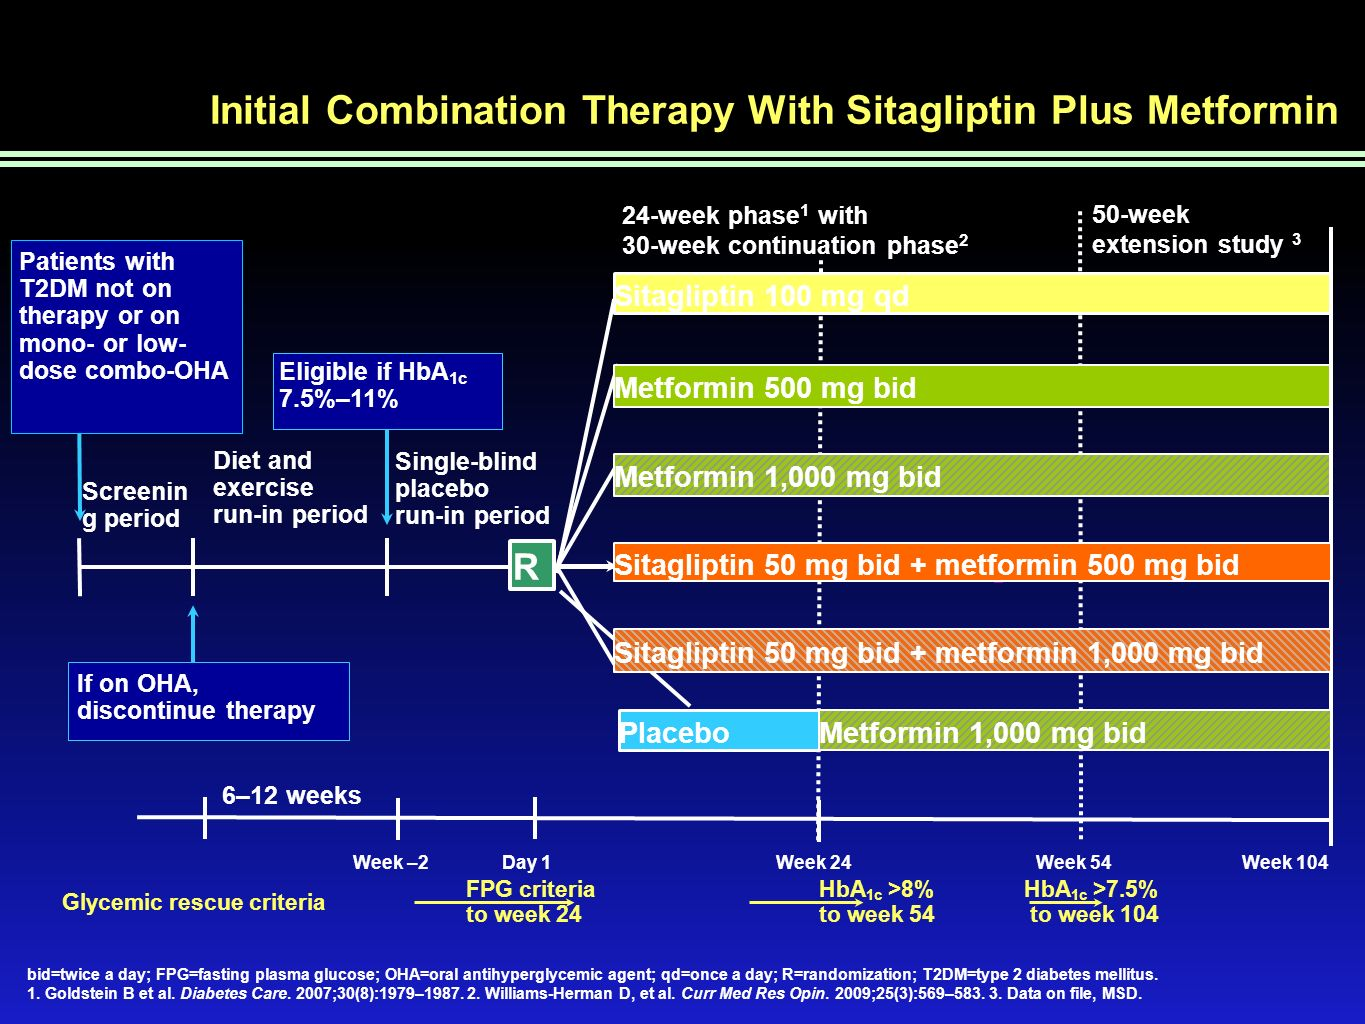 Initial Combination Therapy With Sitagliptin Plus Metformin Study: HbA 1c Results by Baseline HbA 1c at 54 Weeks Continuation All-Patients-Treated Population Baseline HbA 1c <8 Mean 7.6%, n=172 8 to <9 Mean 8.4%, n=244 9 to <10 Mean 9.4%, n=163 10 Mean 10.4%, n=78 0 –3.0 –2.0 –1.0 Mean Change From Baseline, % –3.5 –2.5 –1.5 –0.5 0 –3.0 –2.0 –1.0 –3.5 –2.5 –1.5 –0.5 Sitagliptin 50 mg + metformin 1000 mg bid Metformin 1000 mg bid Sitagliptin 50 mg + metformin 500 mg bid Metformin 500 mg bid Sitagliptin 100 mg qd n=2832403933 n=4339534960n=1930333843n=16 82117 Williams-Herman D et al.